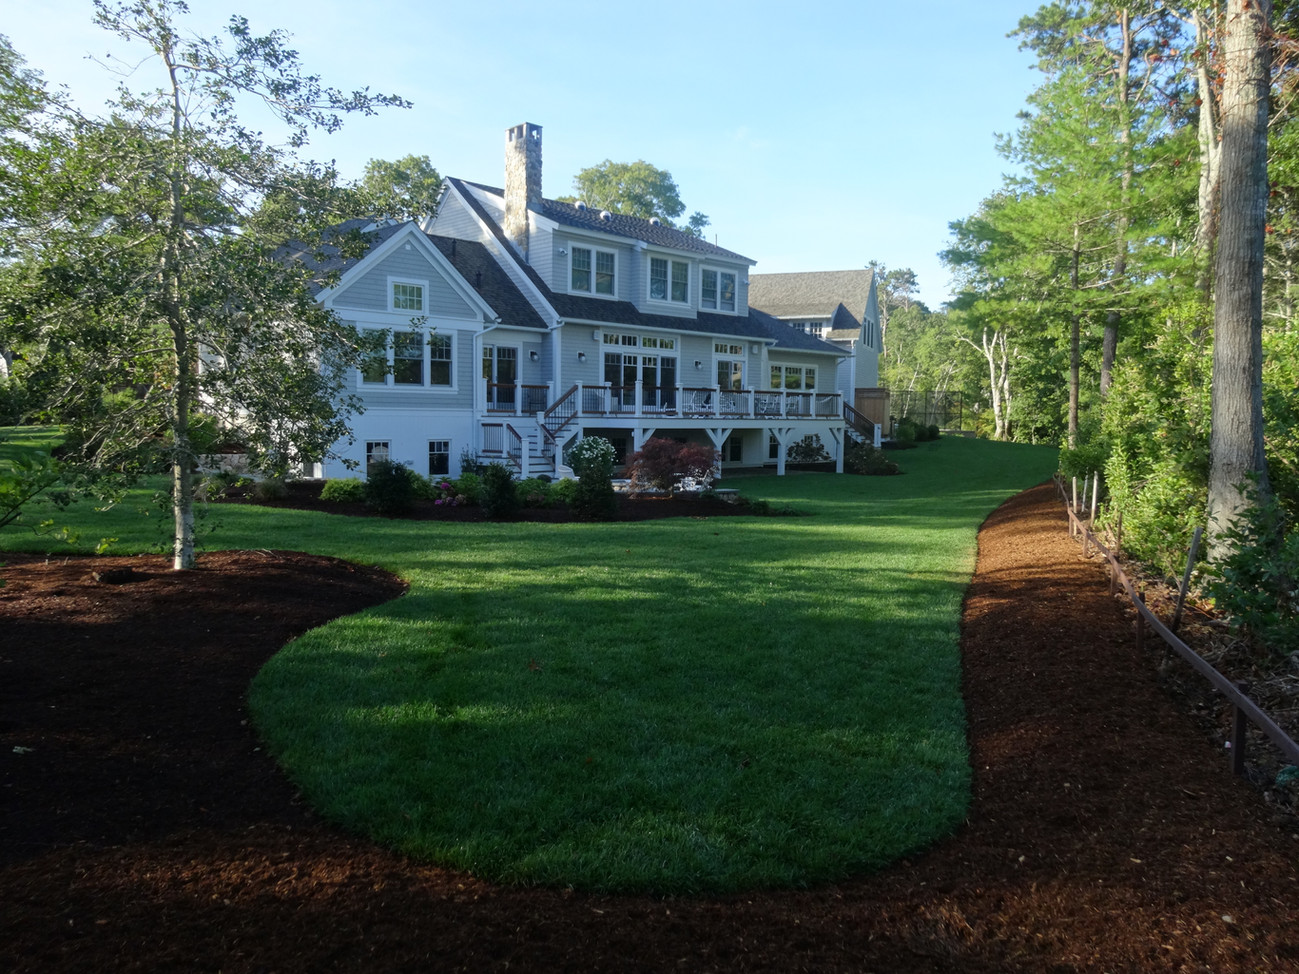 Coy's Brook Landscaping